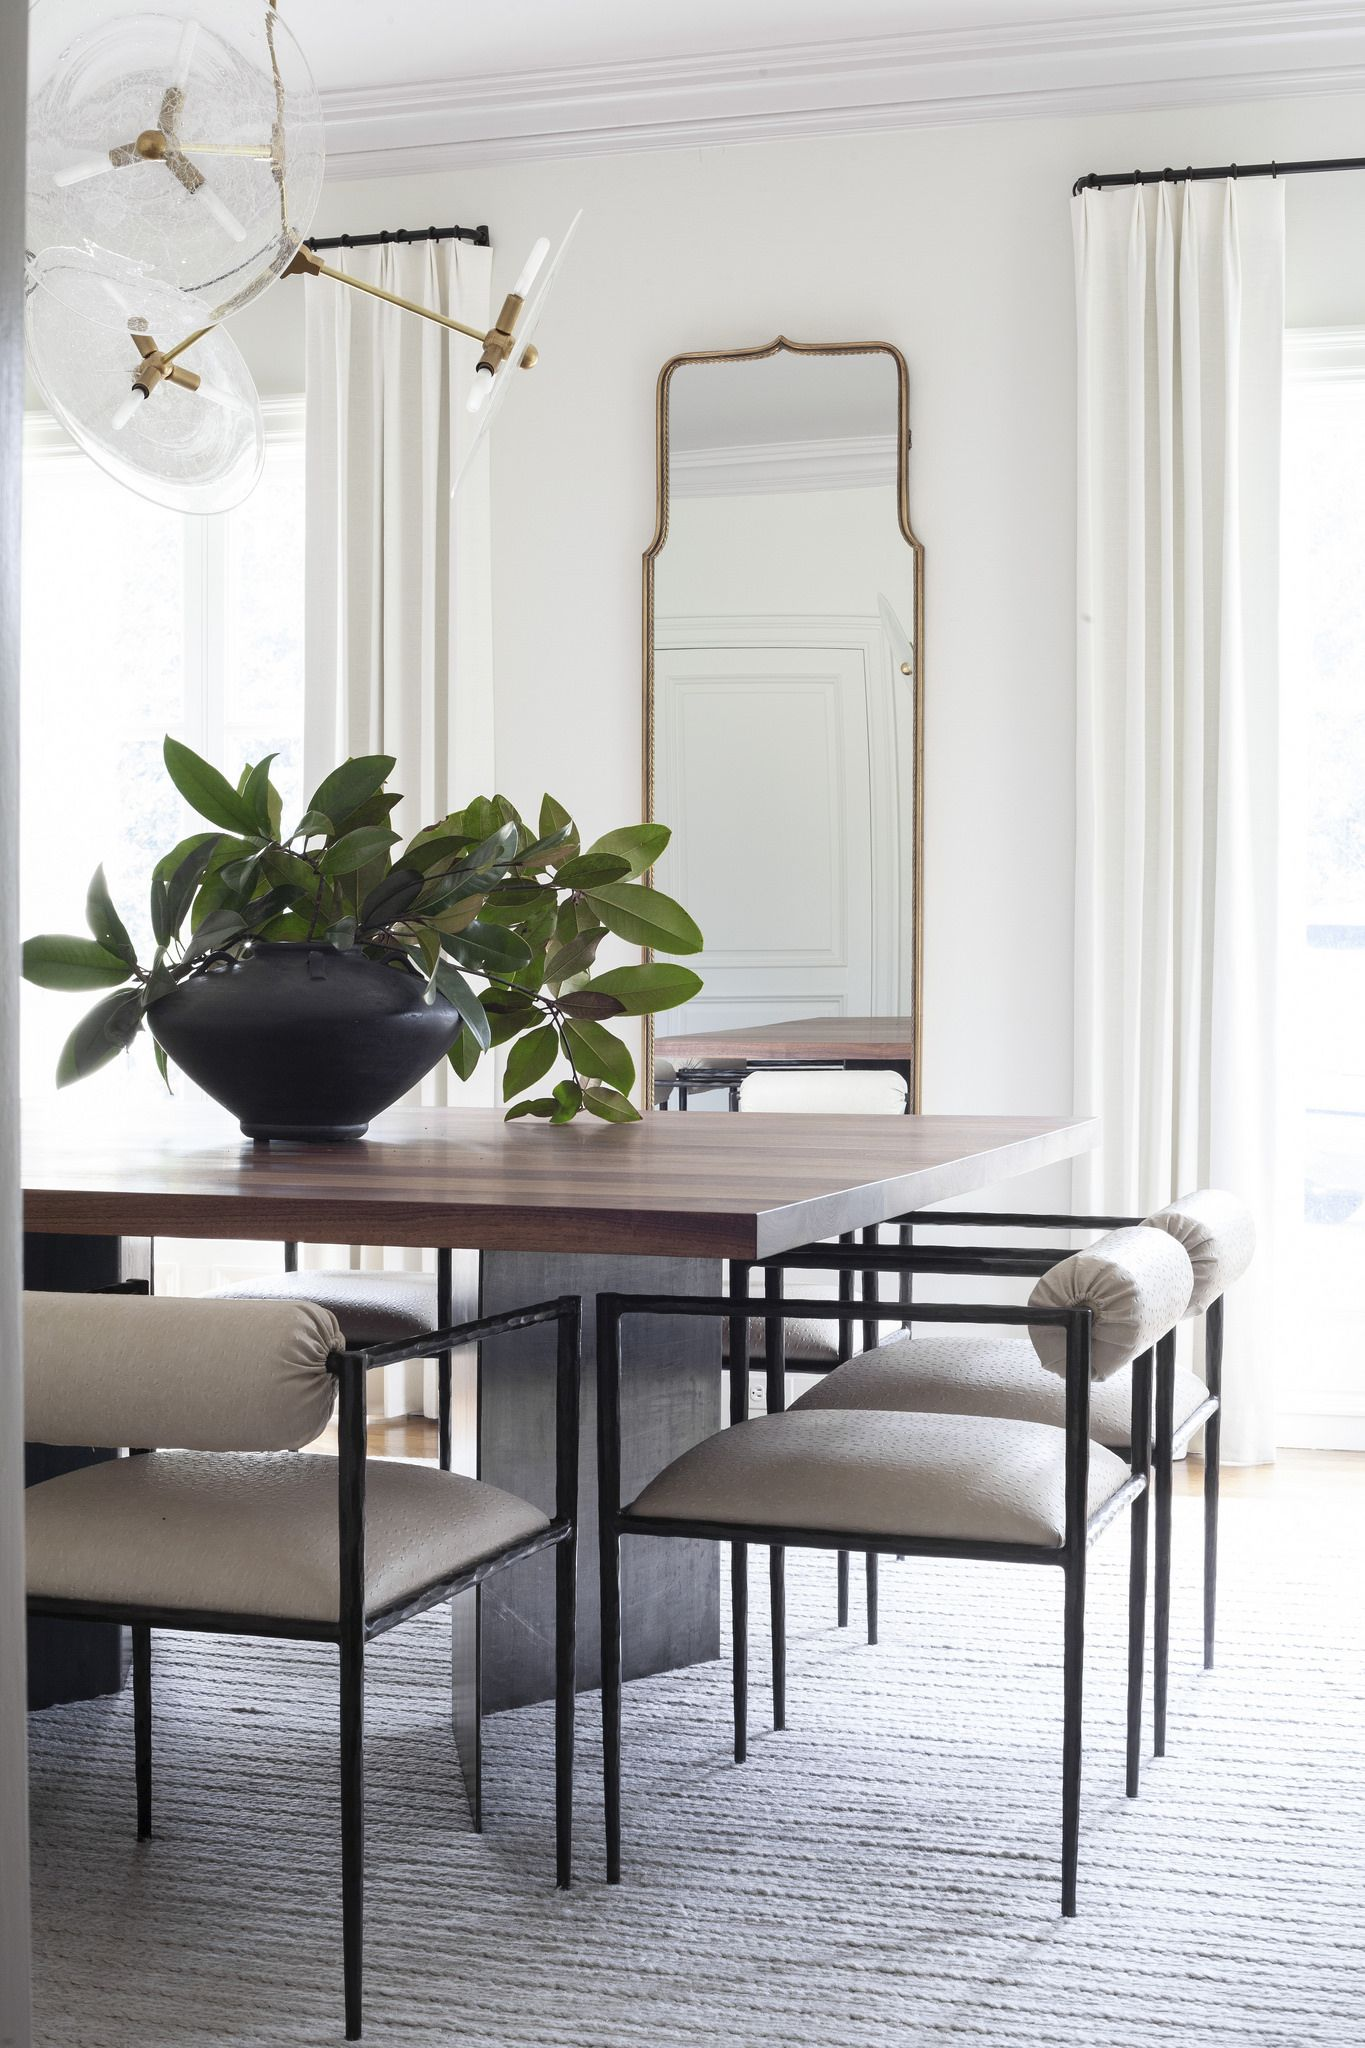 Tall Arched Mirror In The Dining Room White Walls White